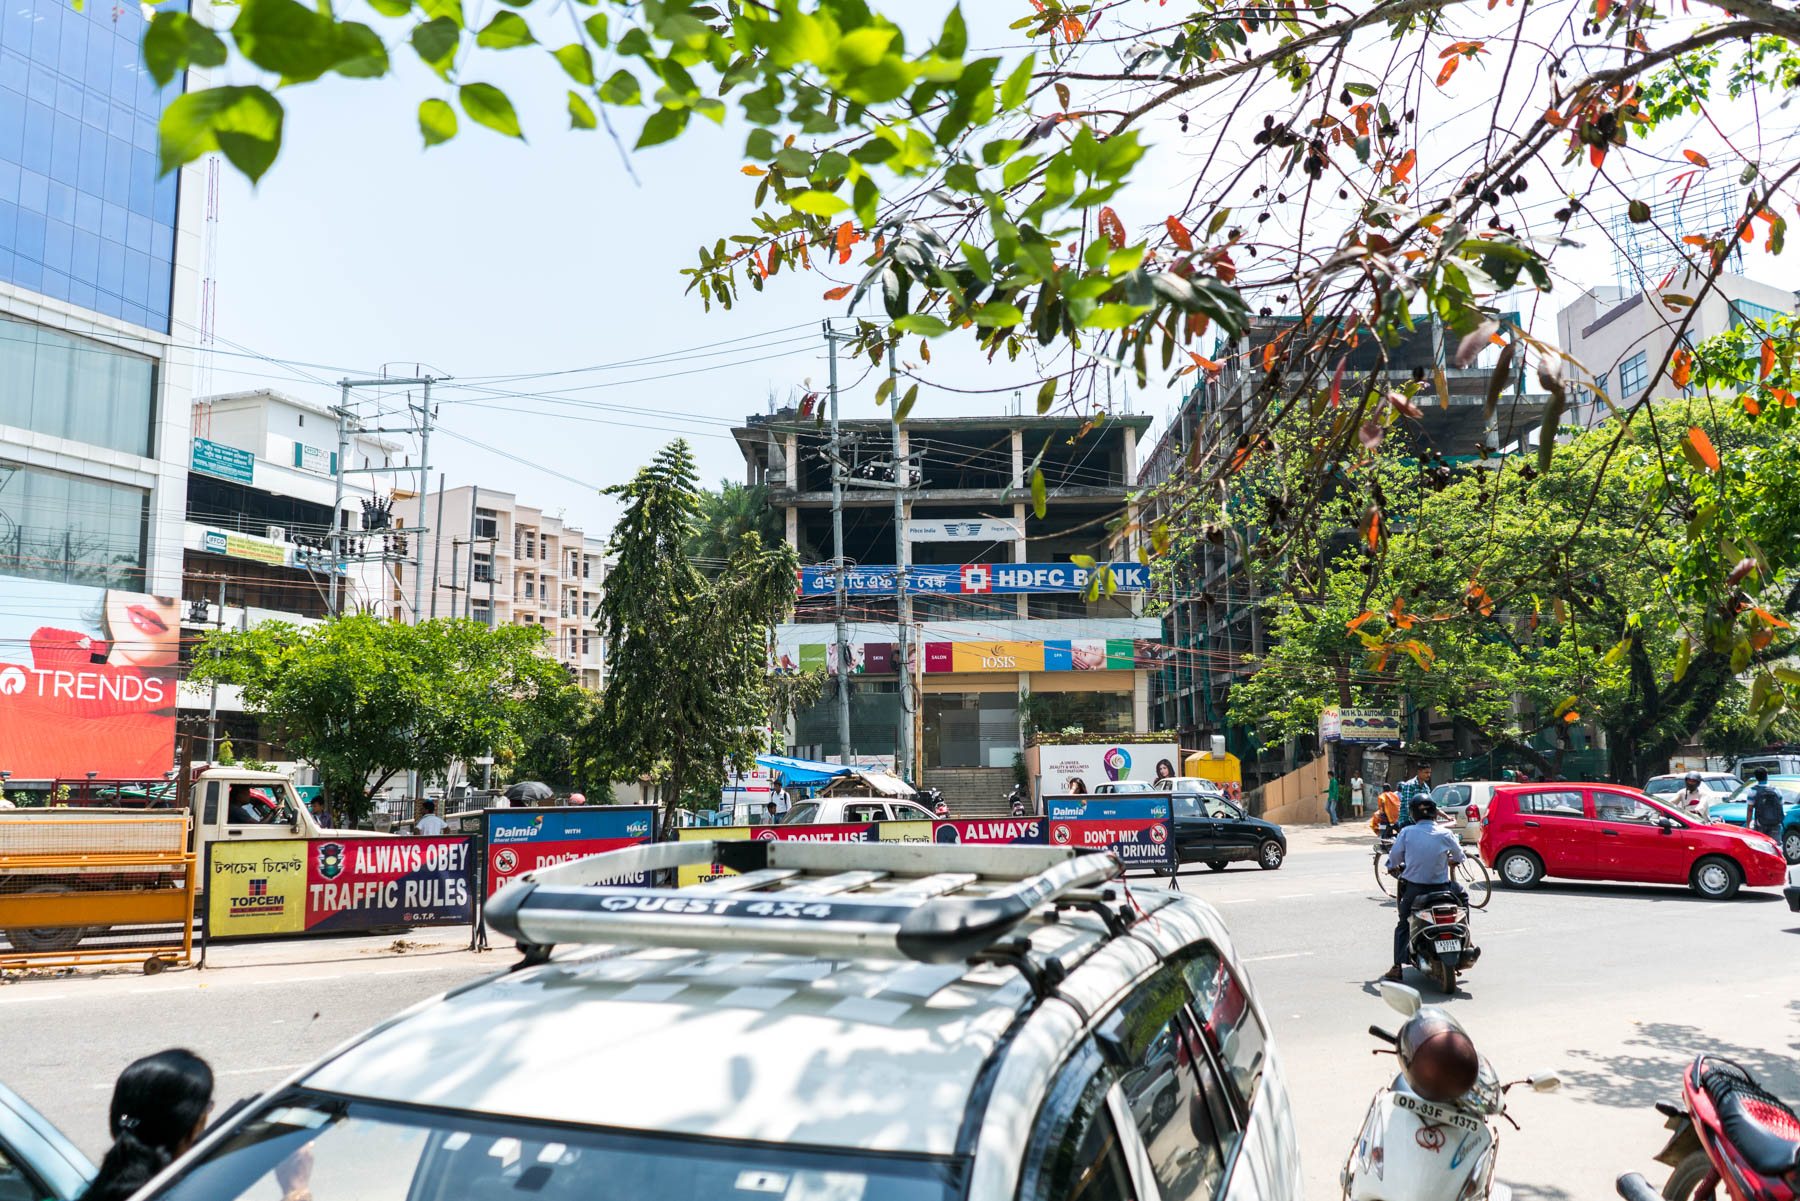 How to apply for an Arunachal Pradesh Protected Area Permit in Guwahati, Assam, India - HSBC bank close to the road where the office is found - Lost With Purpose